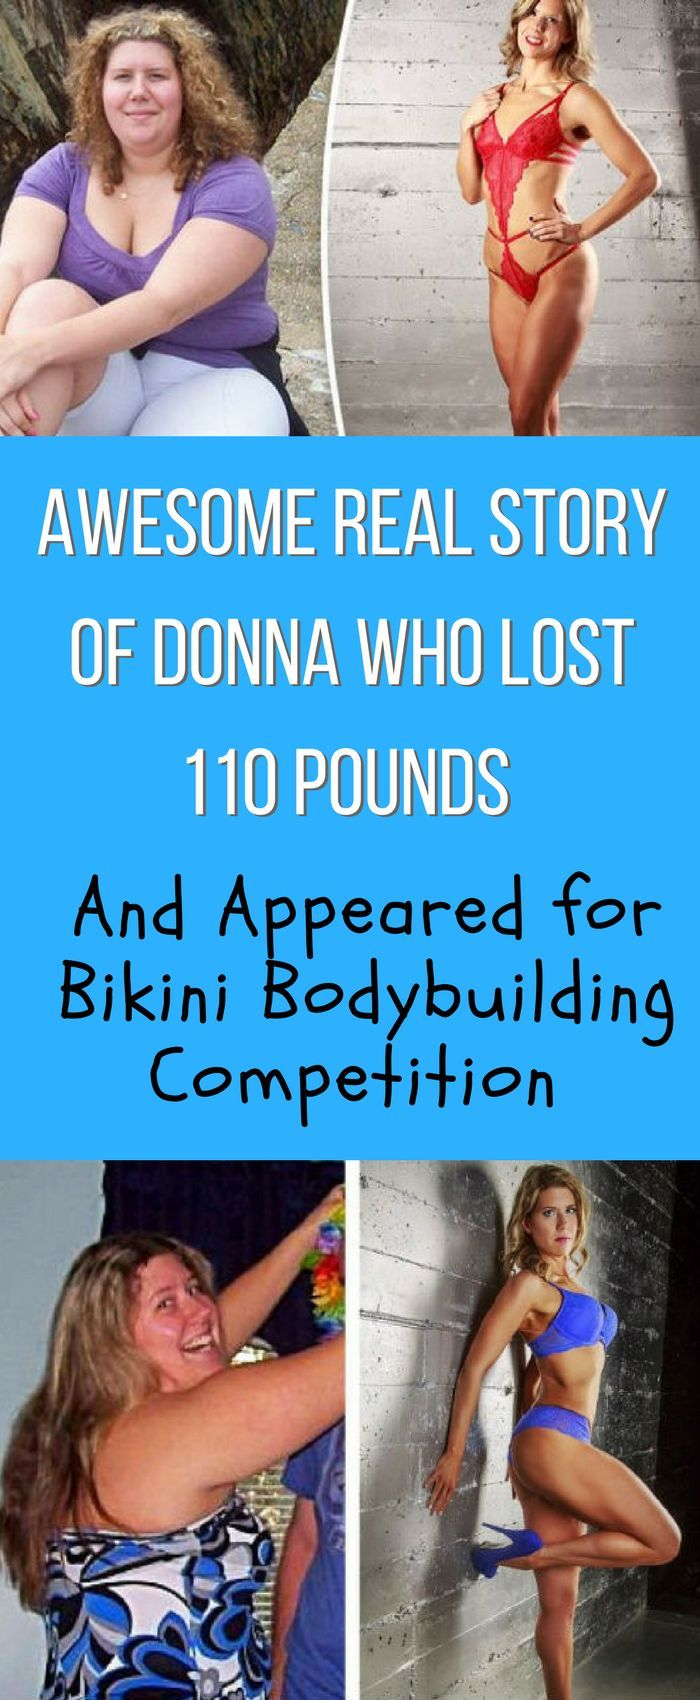 Here is a real life inspiring weight loss story of Donna Gillie who lost 110 pounds & proudly parades her bikini body onstage at high-profile bodybuilding competitions.